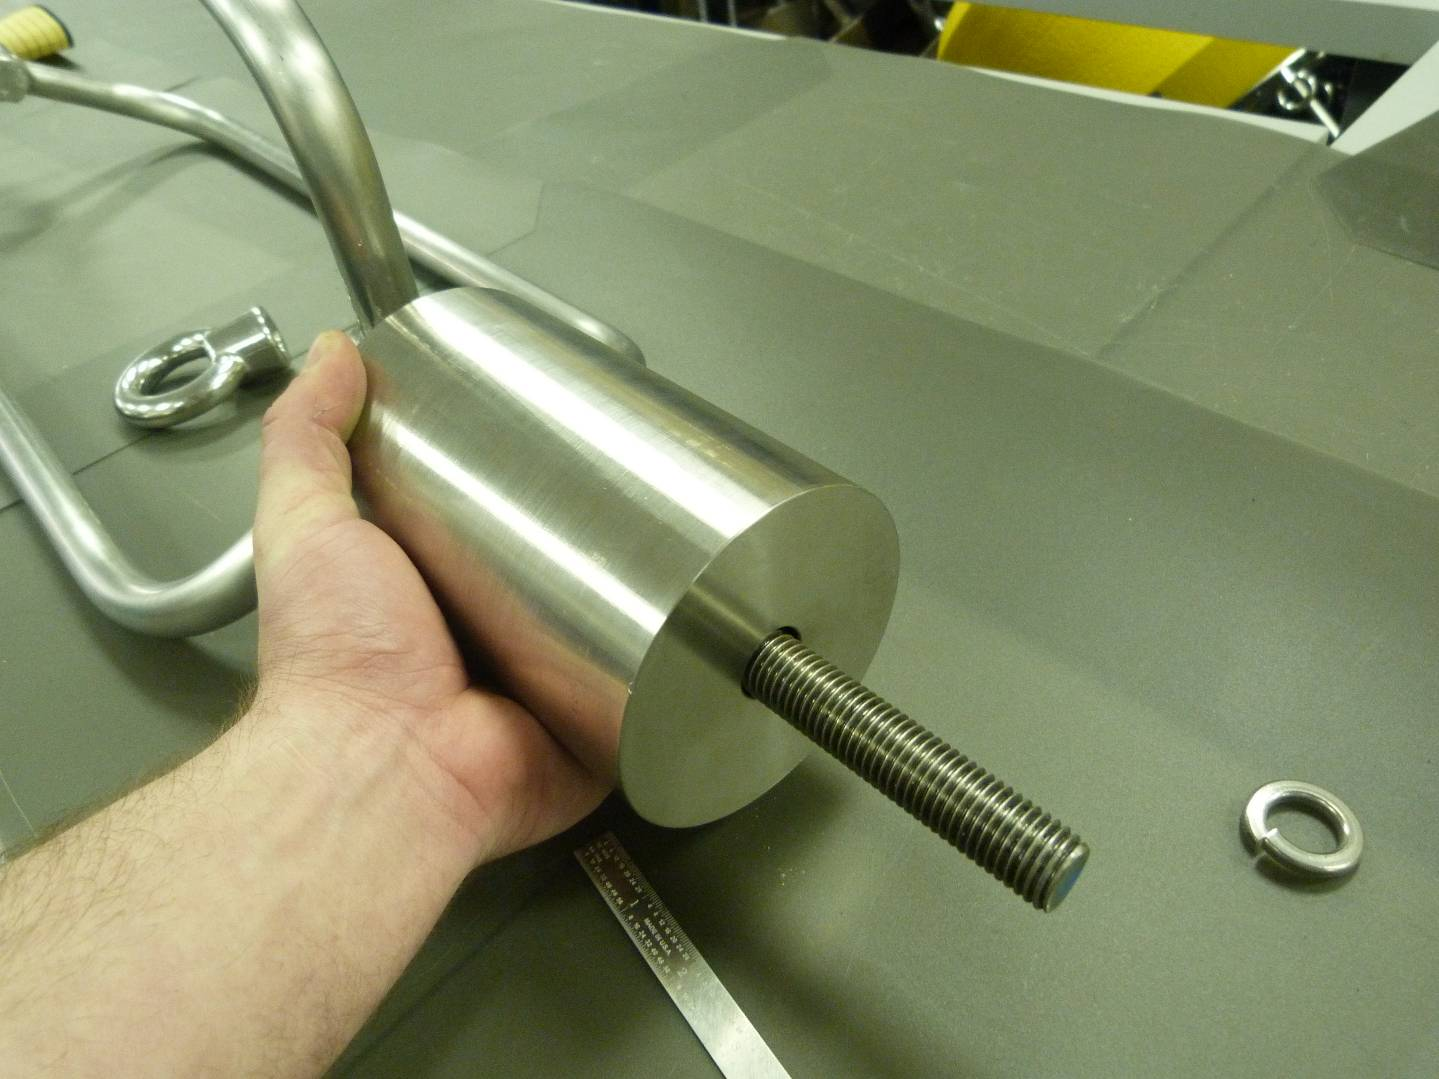 Inserting the Threaded Rod